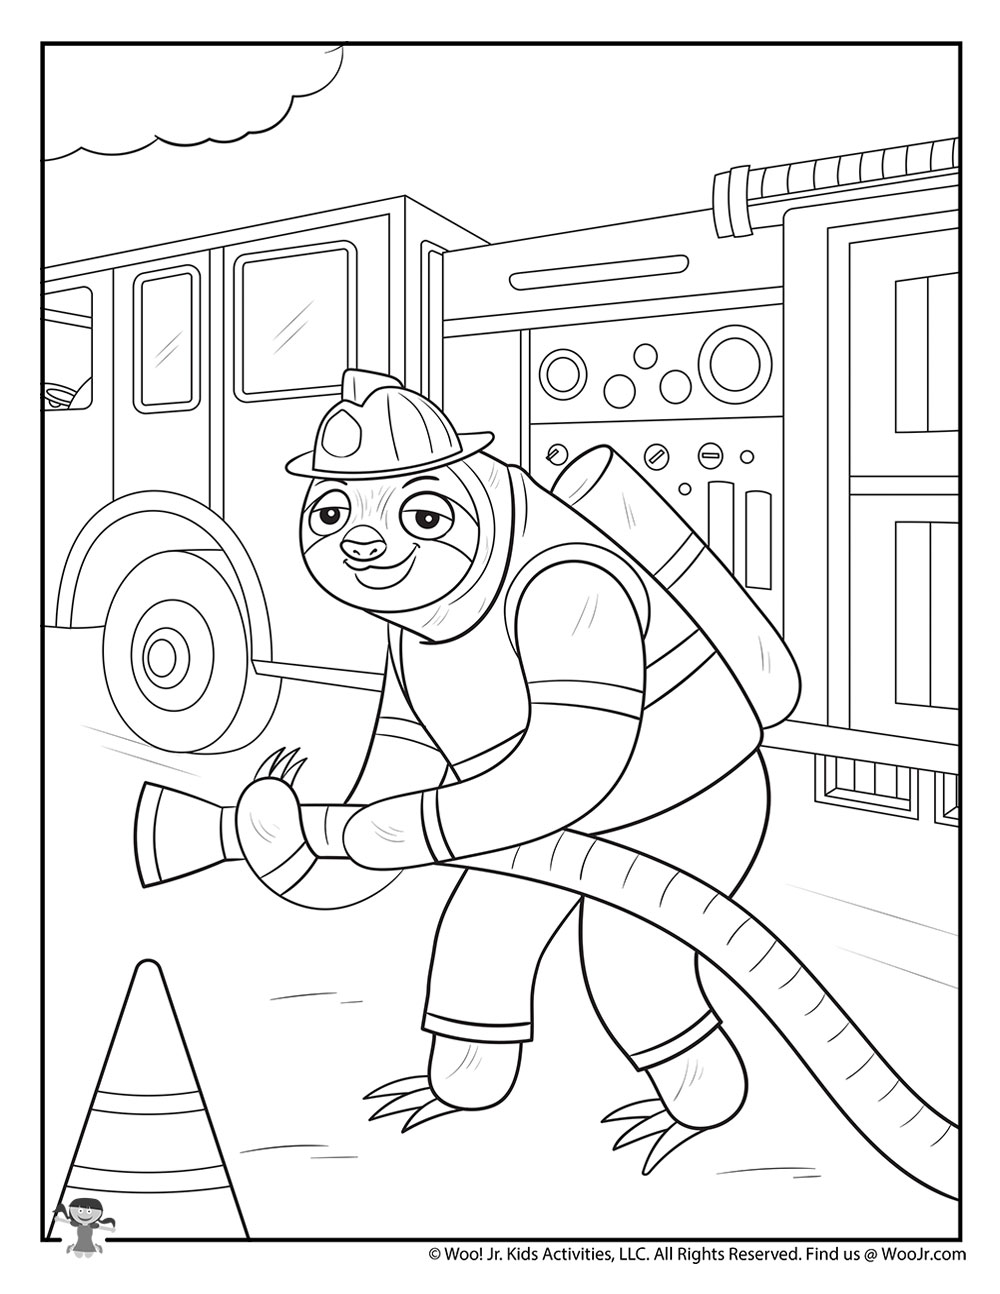 Firefighter Coloring Page   Woo! Jr. Kids Activities